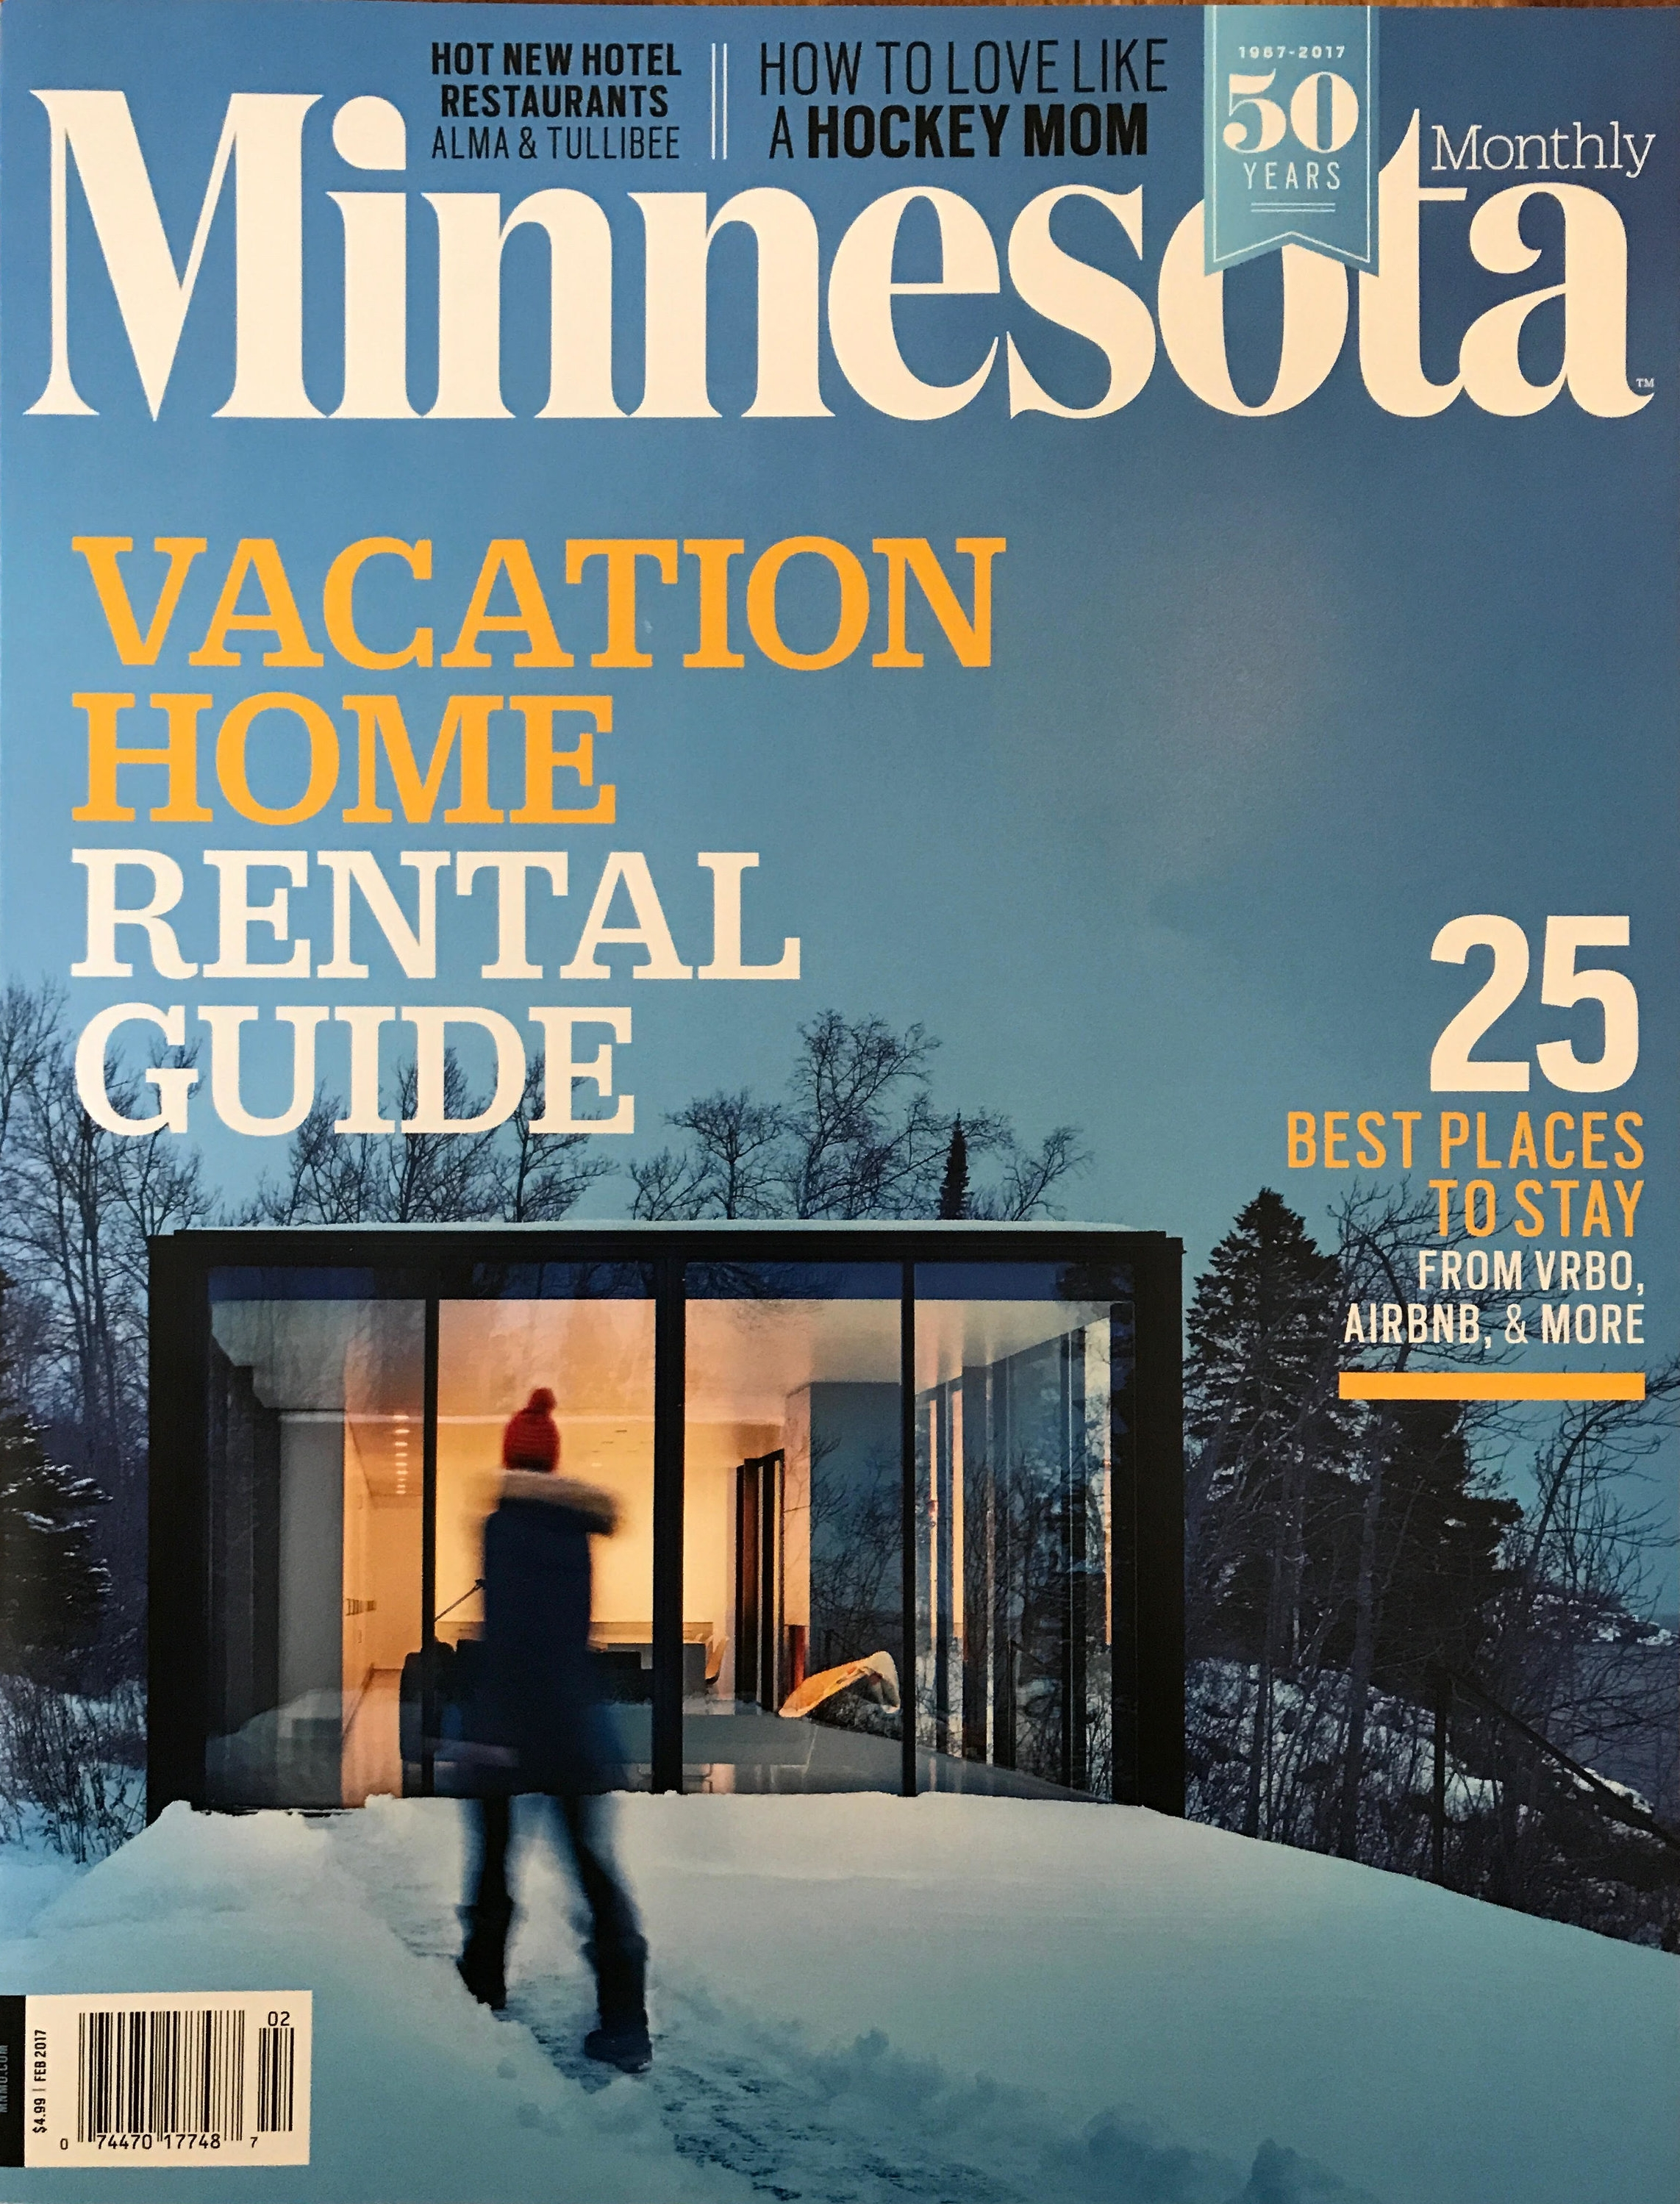 Top 25 Places to Stay 2017 -